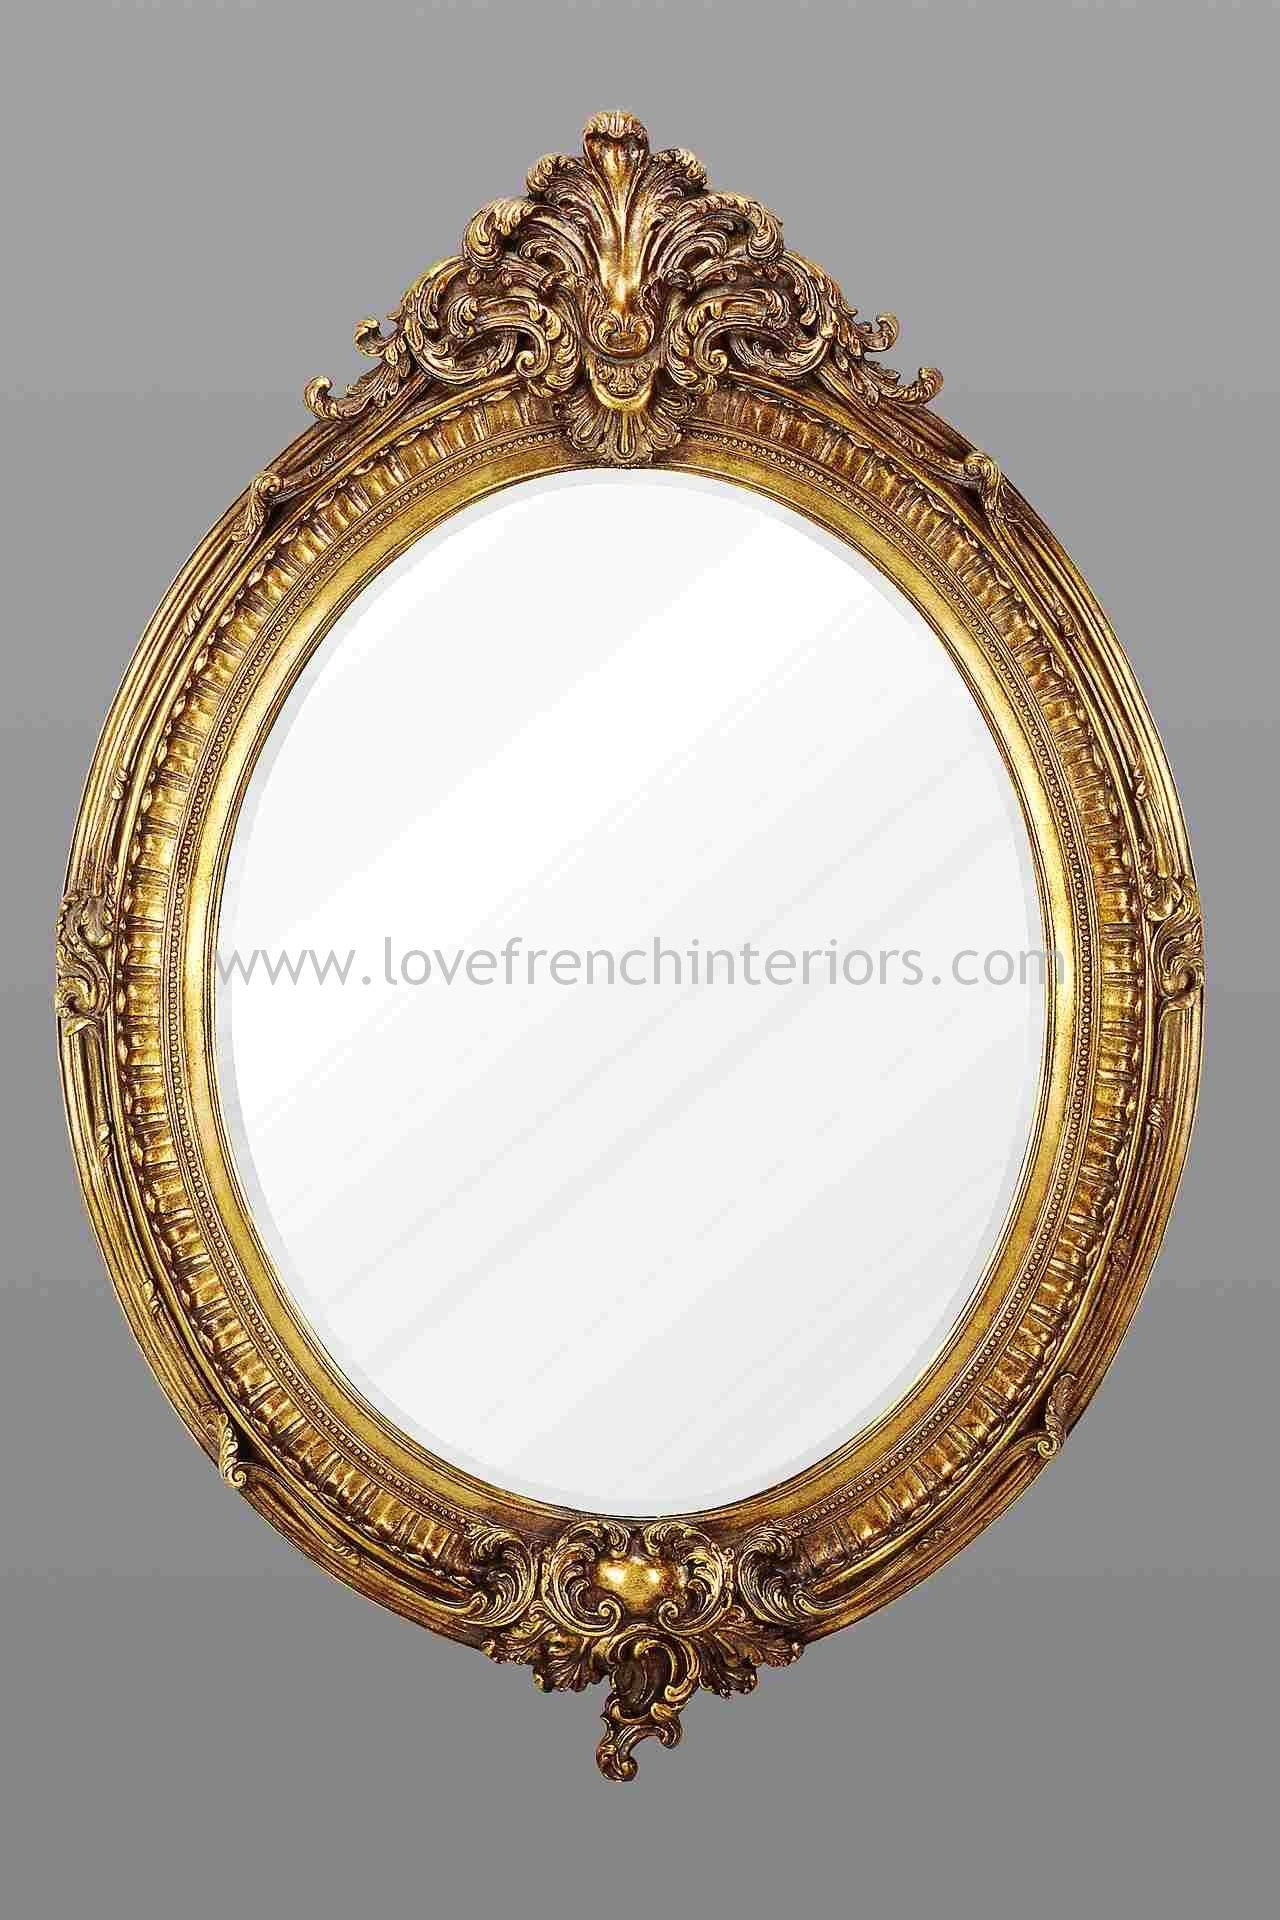 Gold Oval French Mirror Regarding French Oval Mirrors (View 12 of 15)